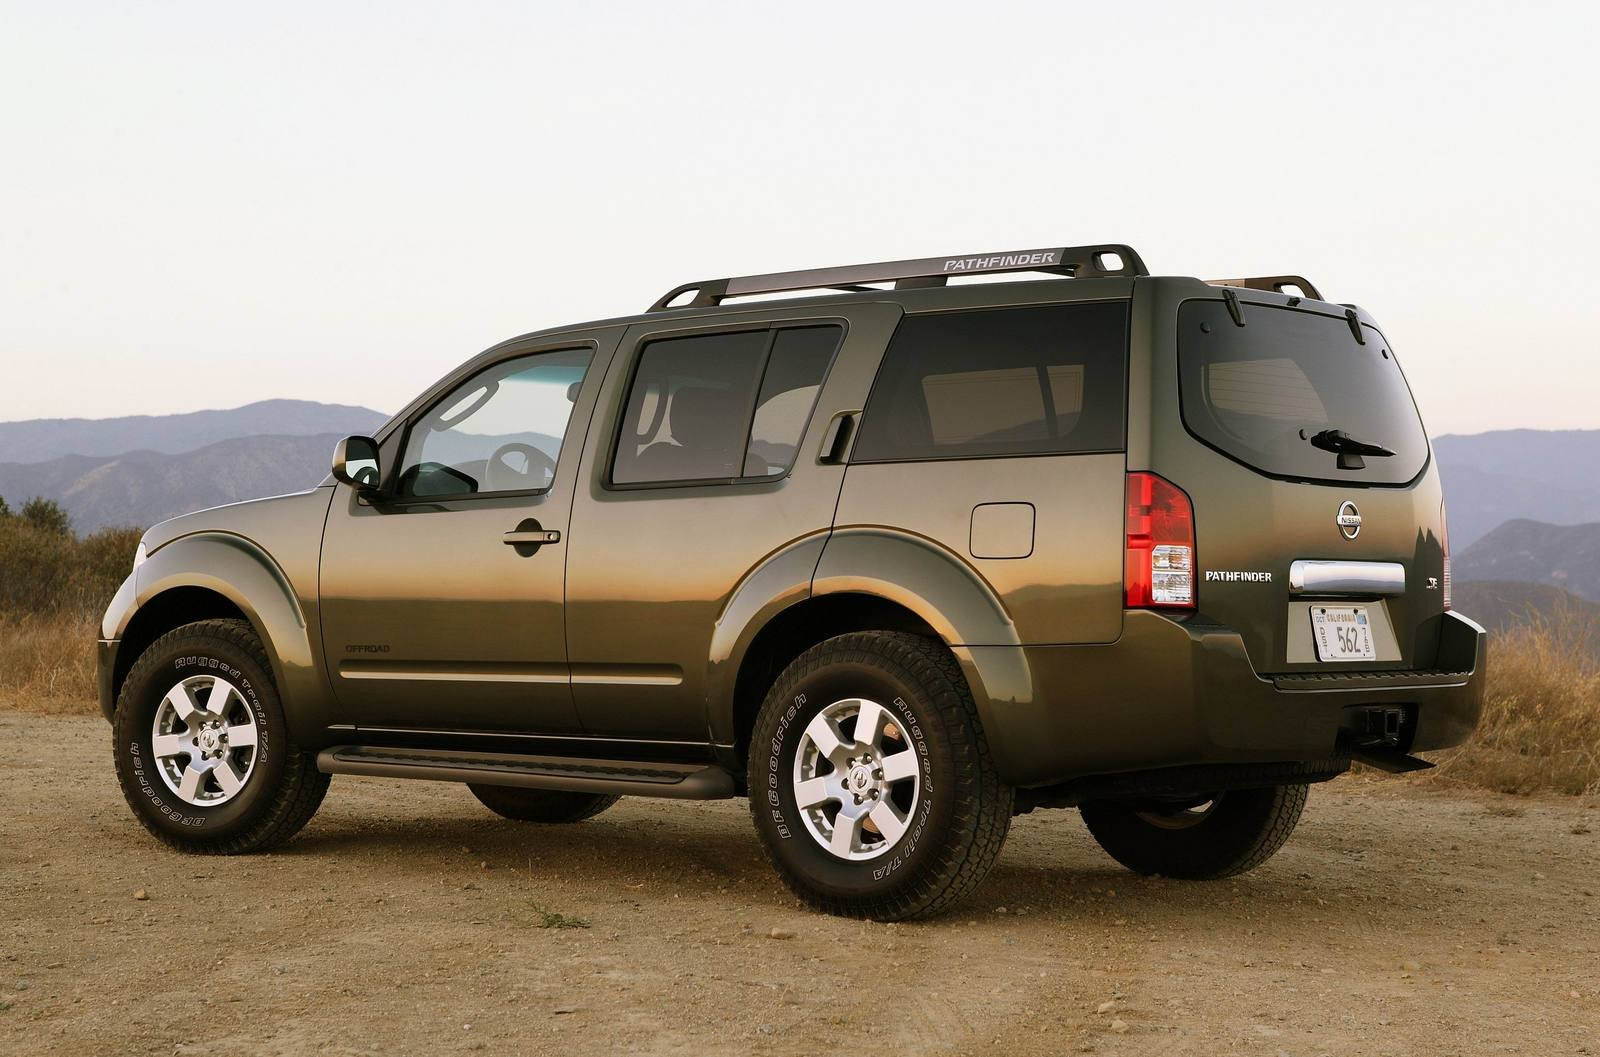 2006 nissan pathfinder picture 41157 car review top. Black Bedroom Furniture Sets. Home Design Ideas